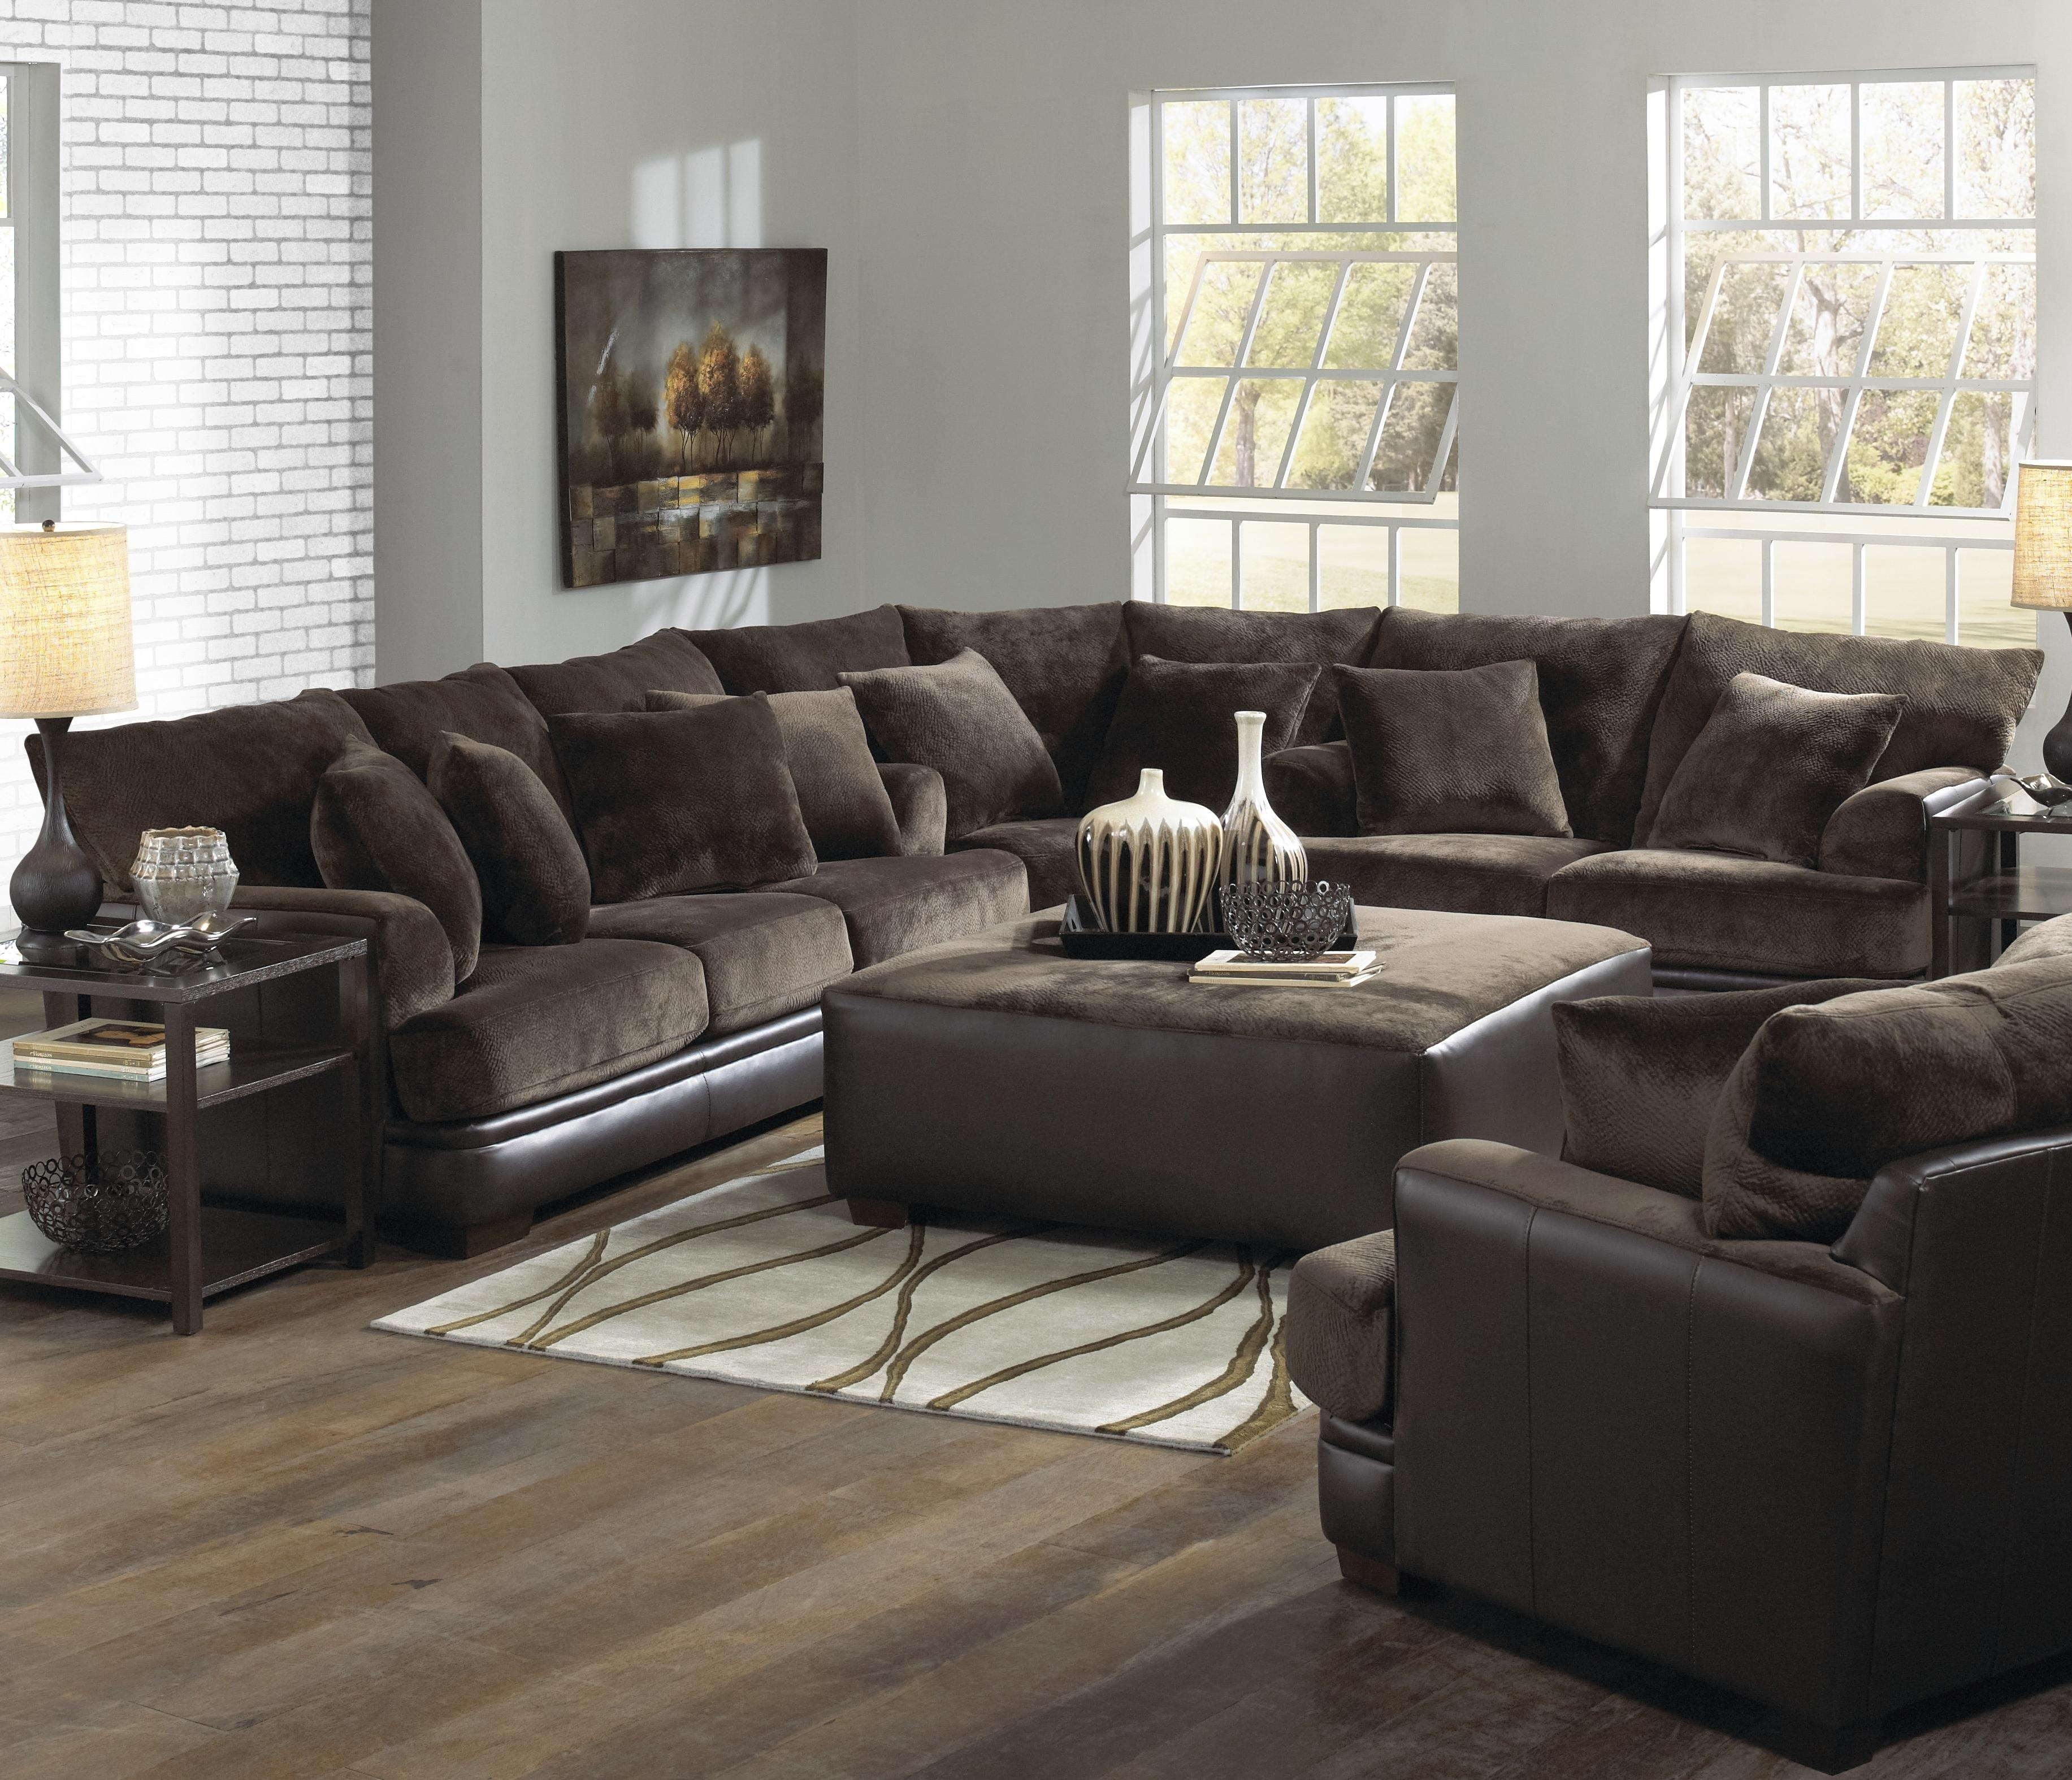 Amazing Large U Shaped Sectional Sofa 18 On Reclining Sectional With Regard To Large U Shaped Sectionals (View 6 of 10)